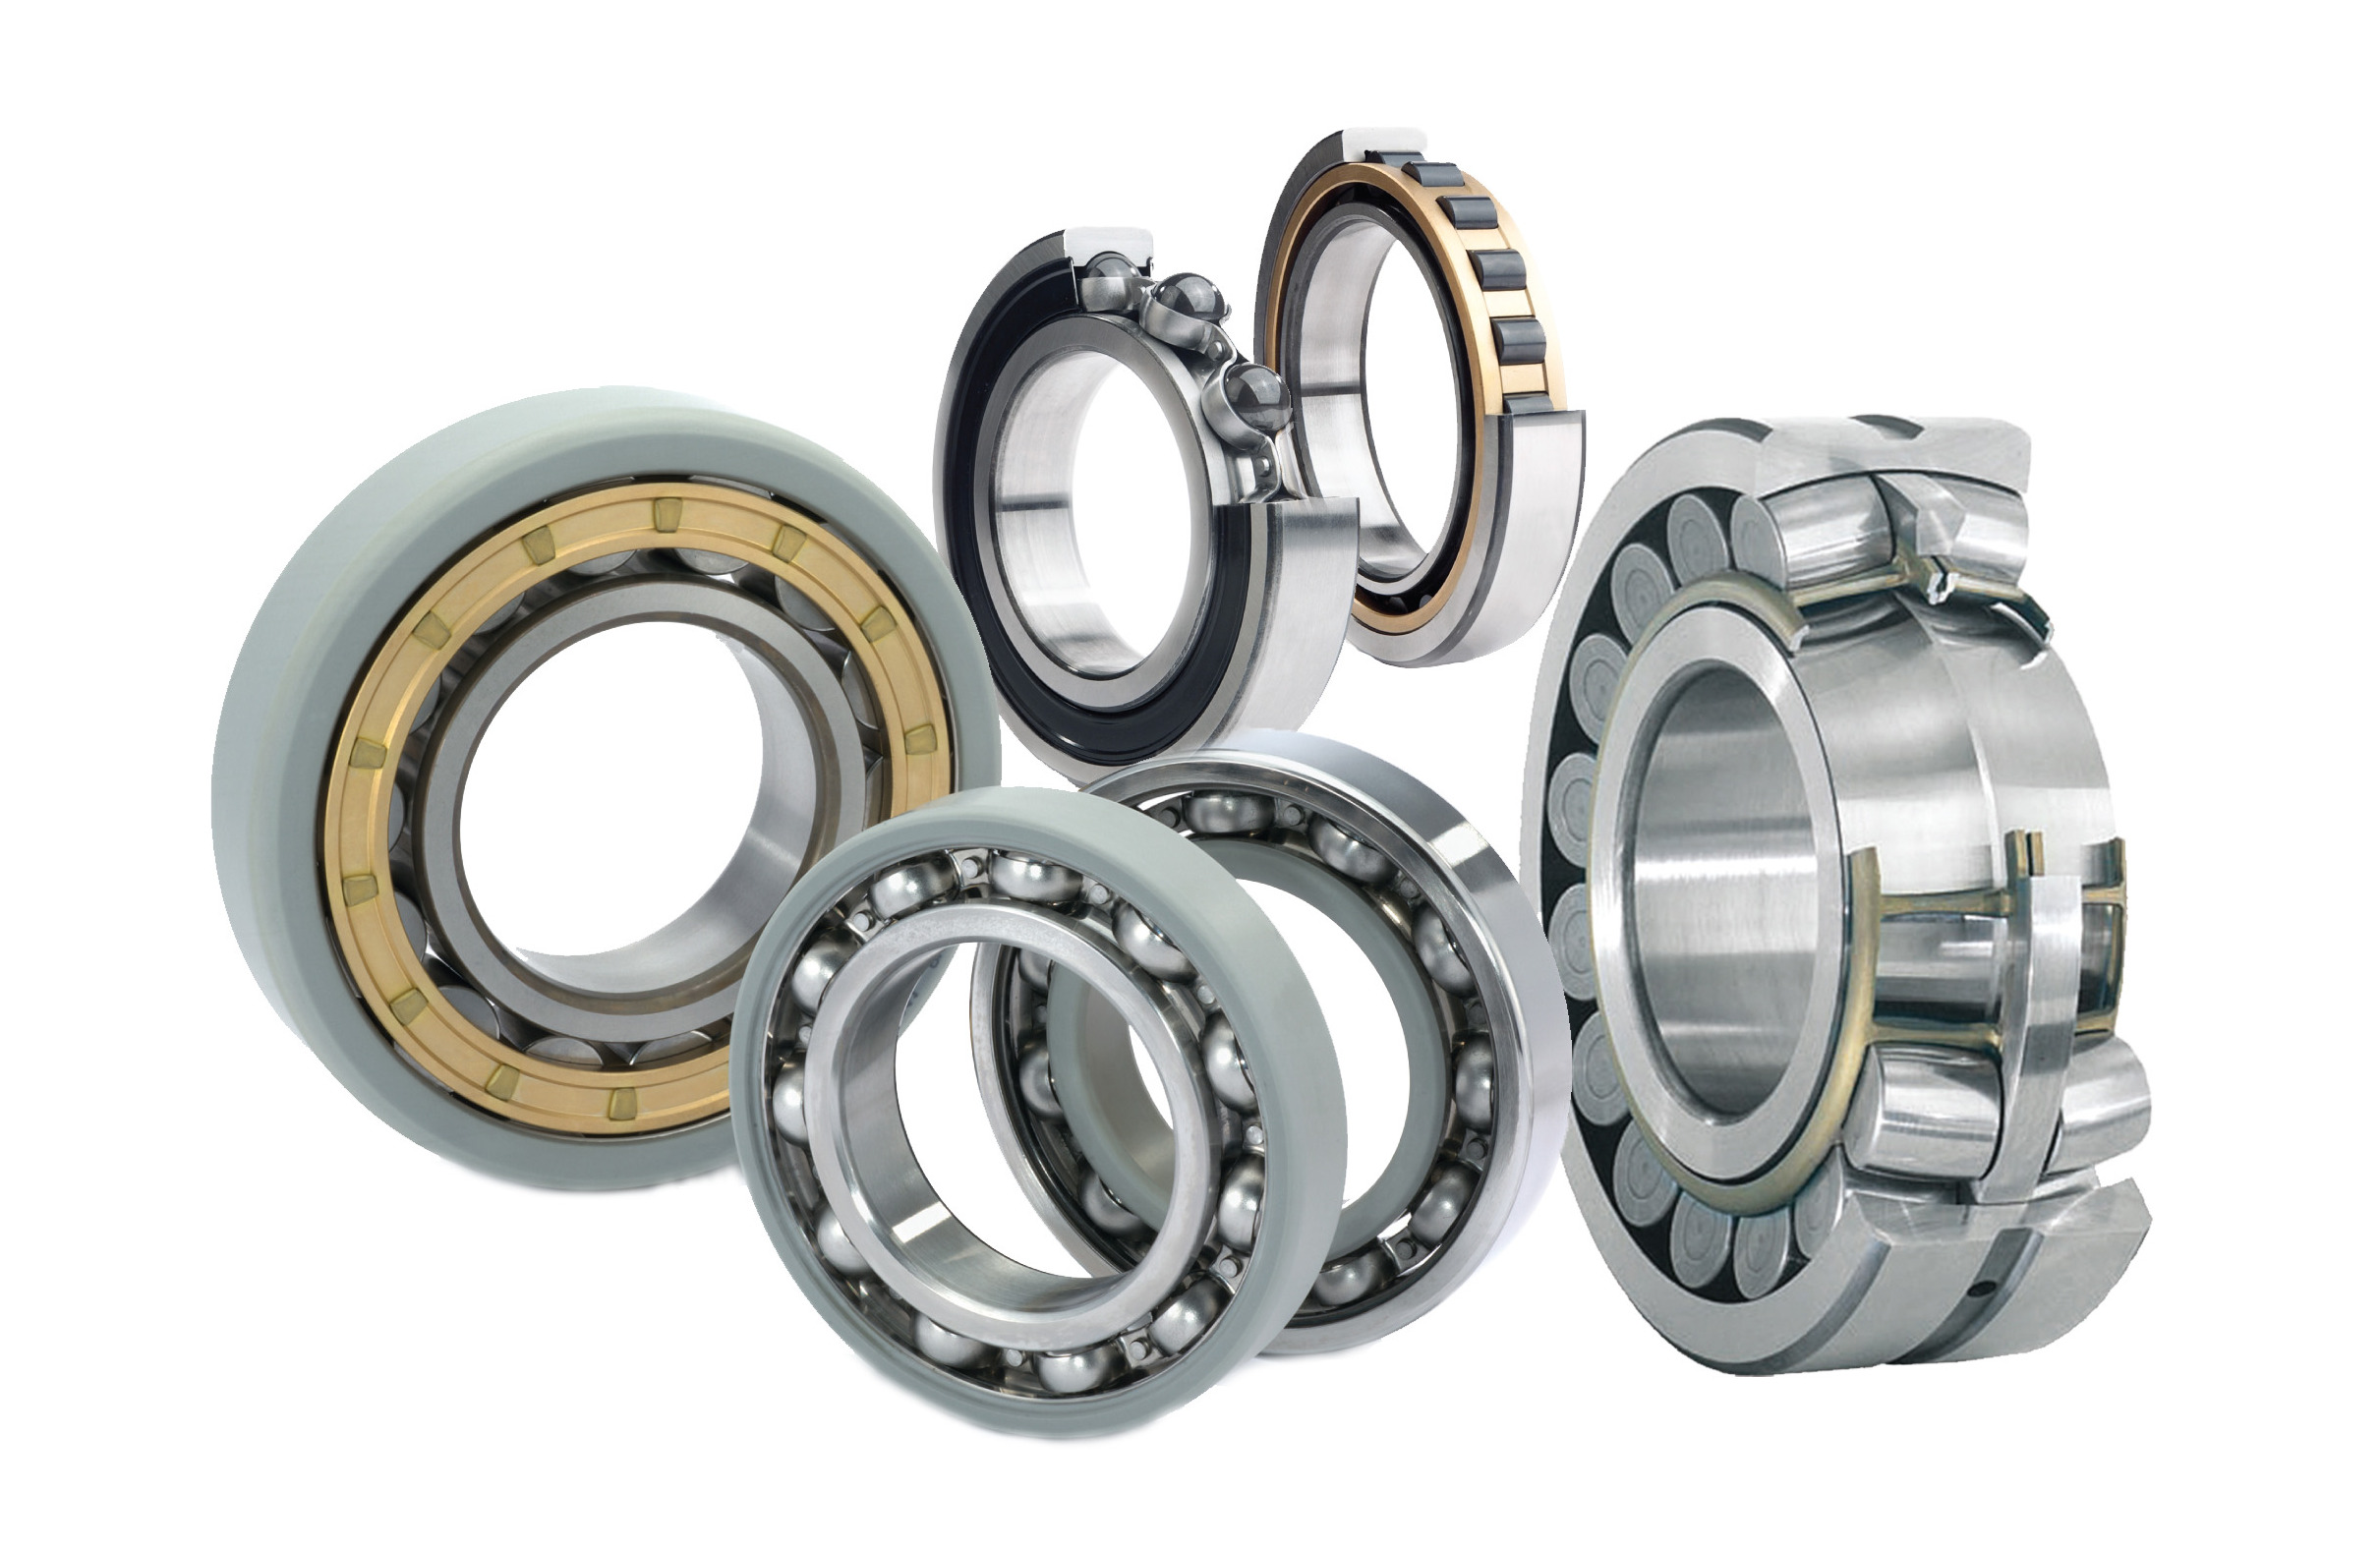 Different types of SKF bearings merged white background